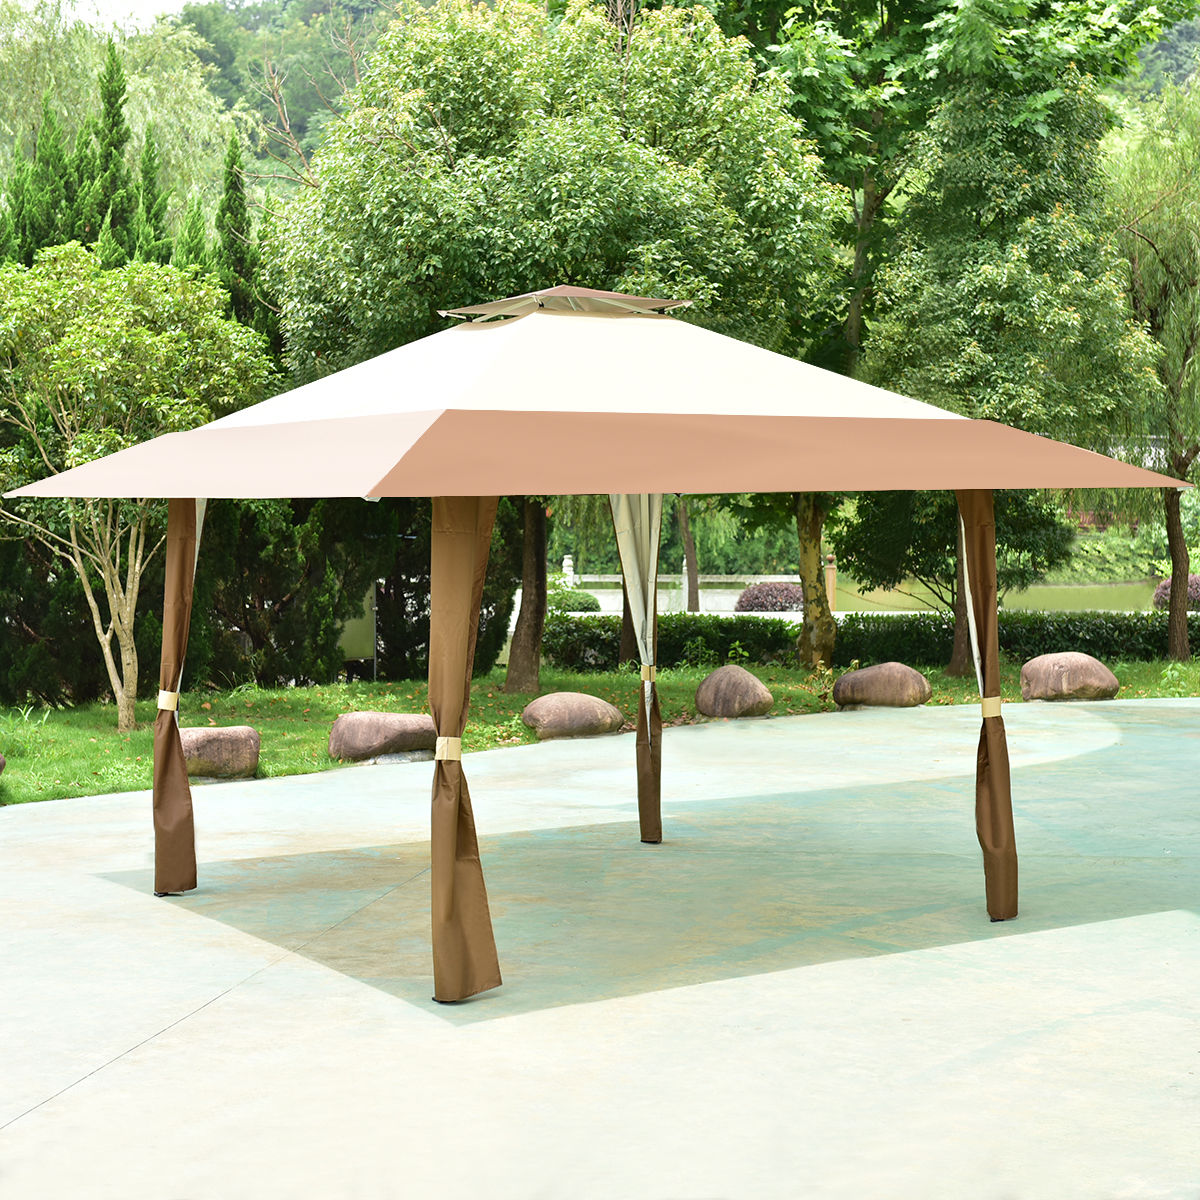 Costway 13u0027x13u0027 Folding Gazebo Canopy Shelter Awning Tent Patio Garden Outdoor Companion - Walmart.com : outdoor gazebo canopy - afamca.org